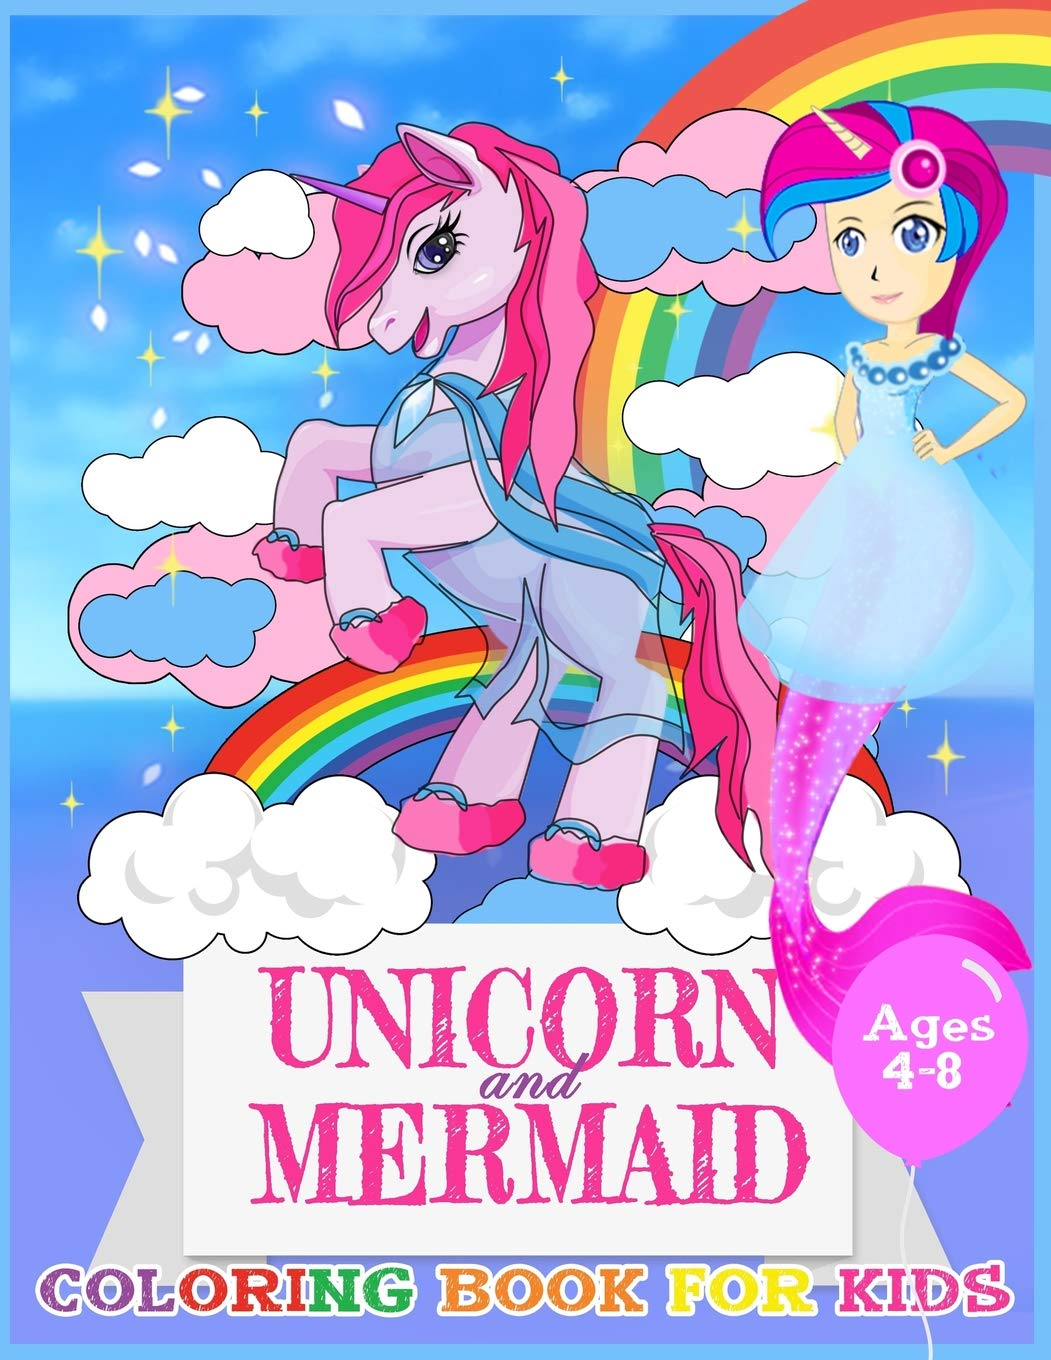 Unicorn And Mermaid Coloring Book For Kids Ages 4 8 Coloring Page